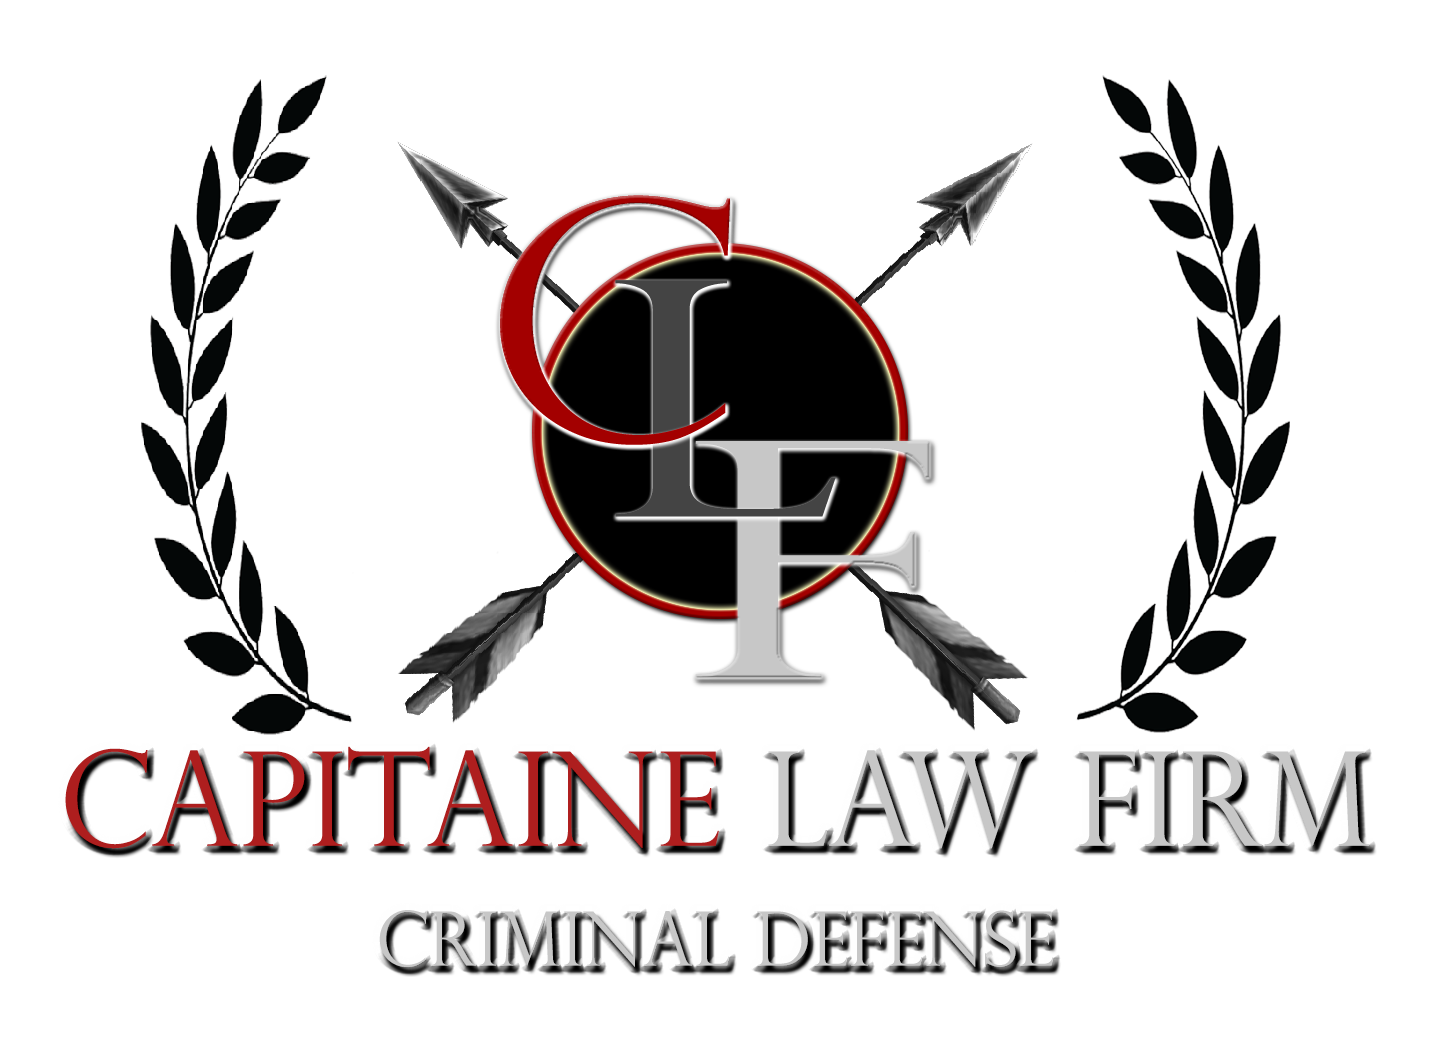 Capitaine Law Firm